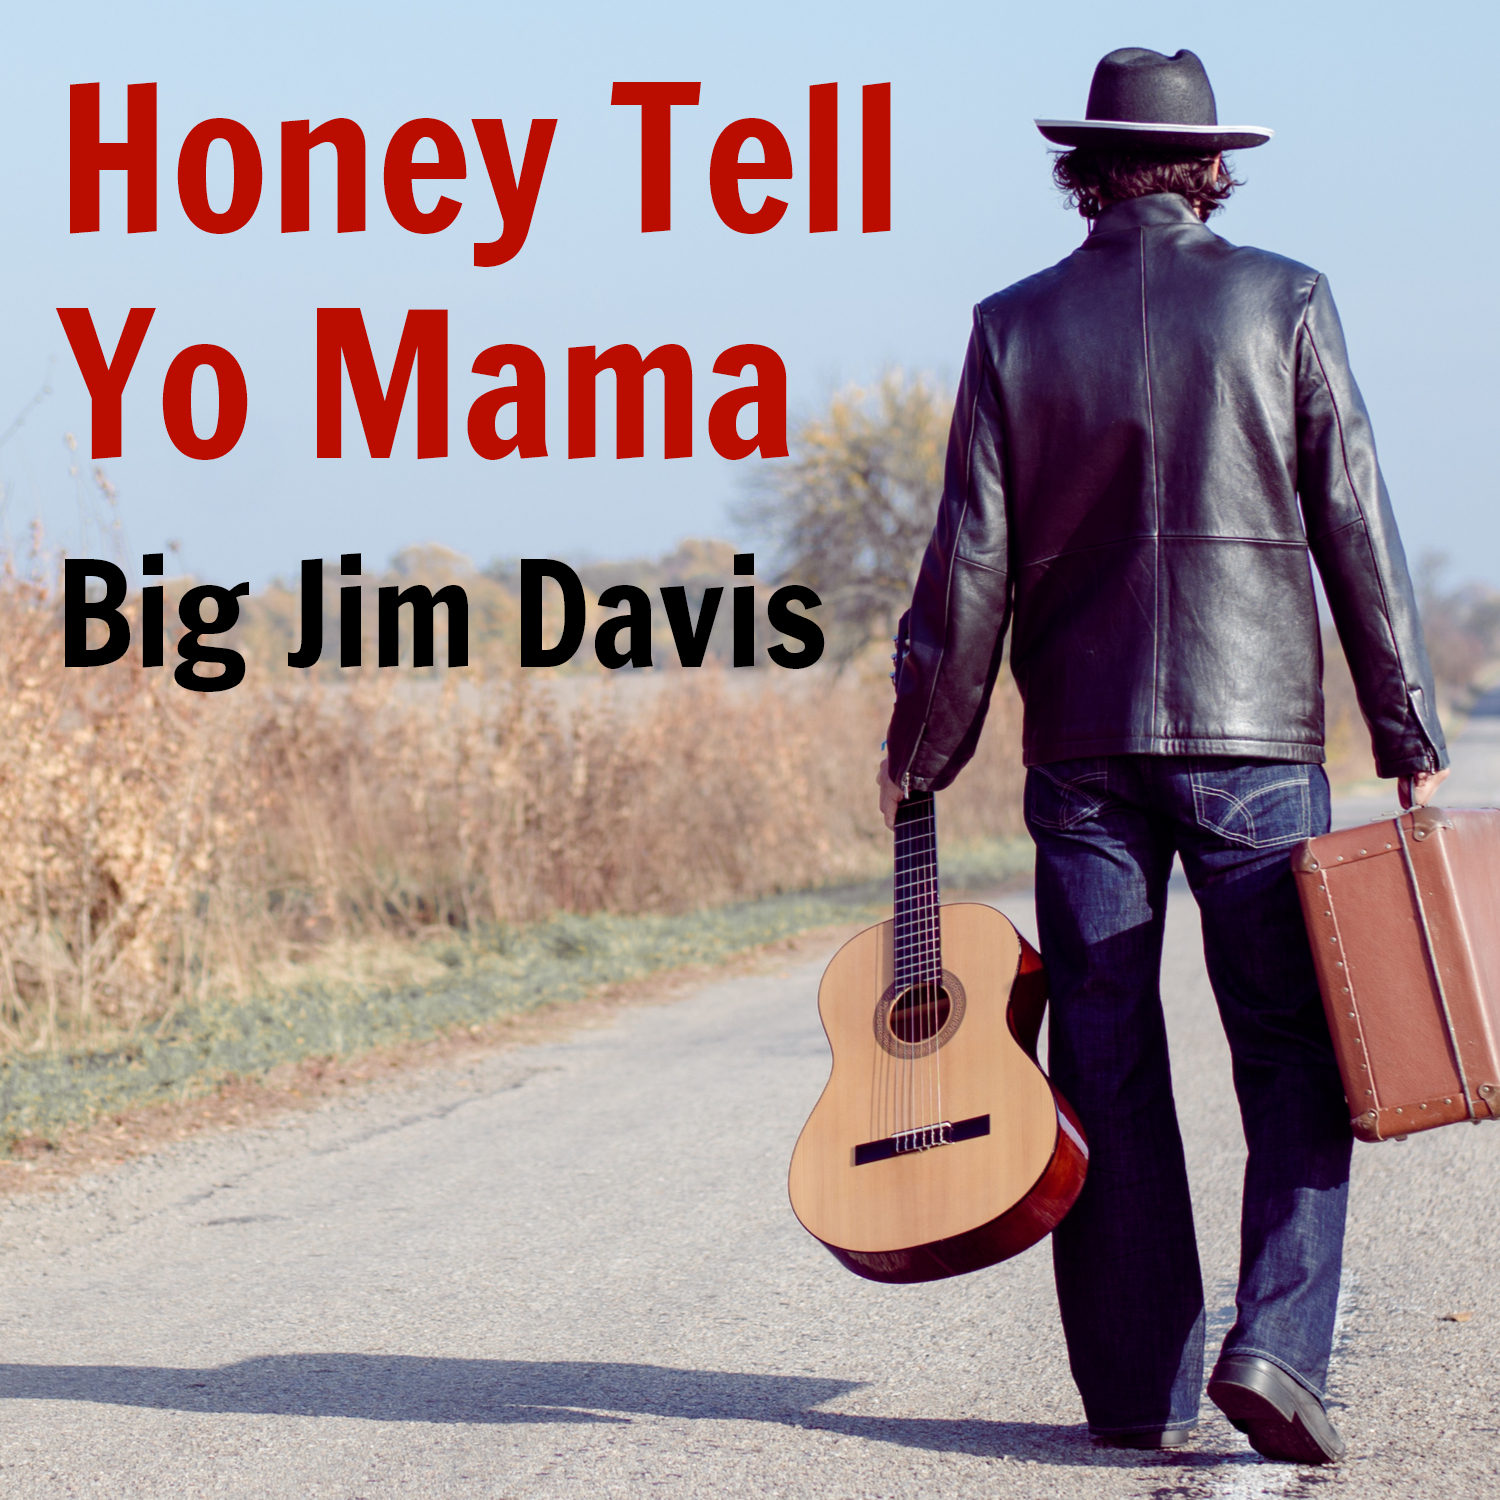 Big Jim Davis - Honey Tell Yo Mama (single)